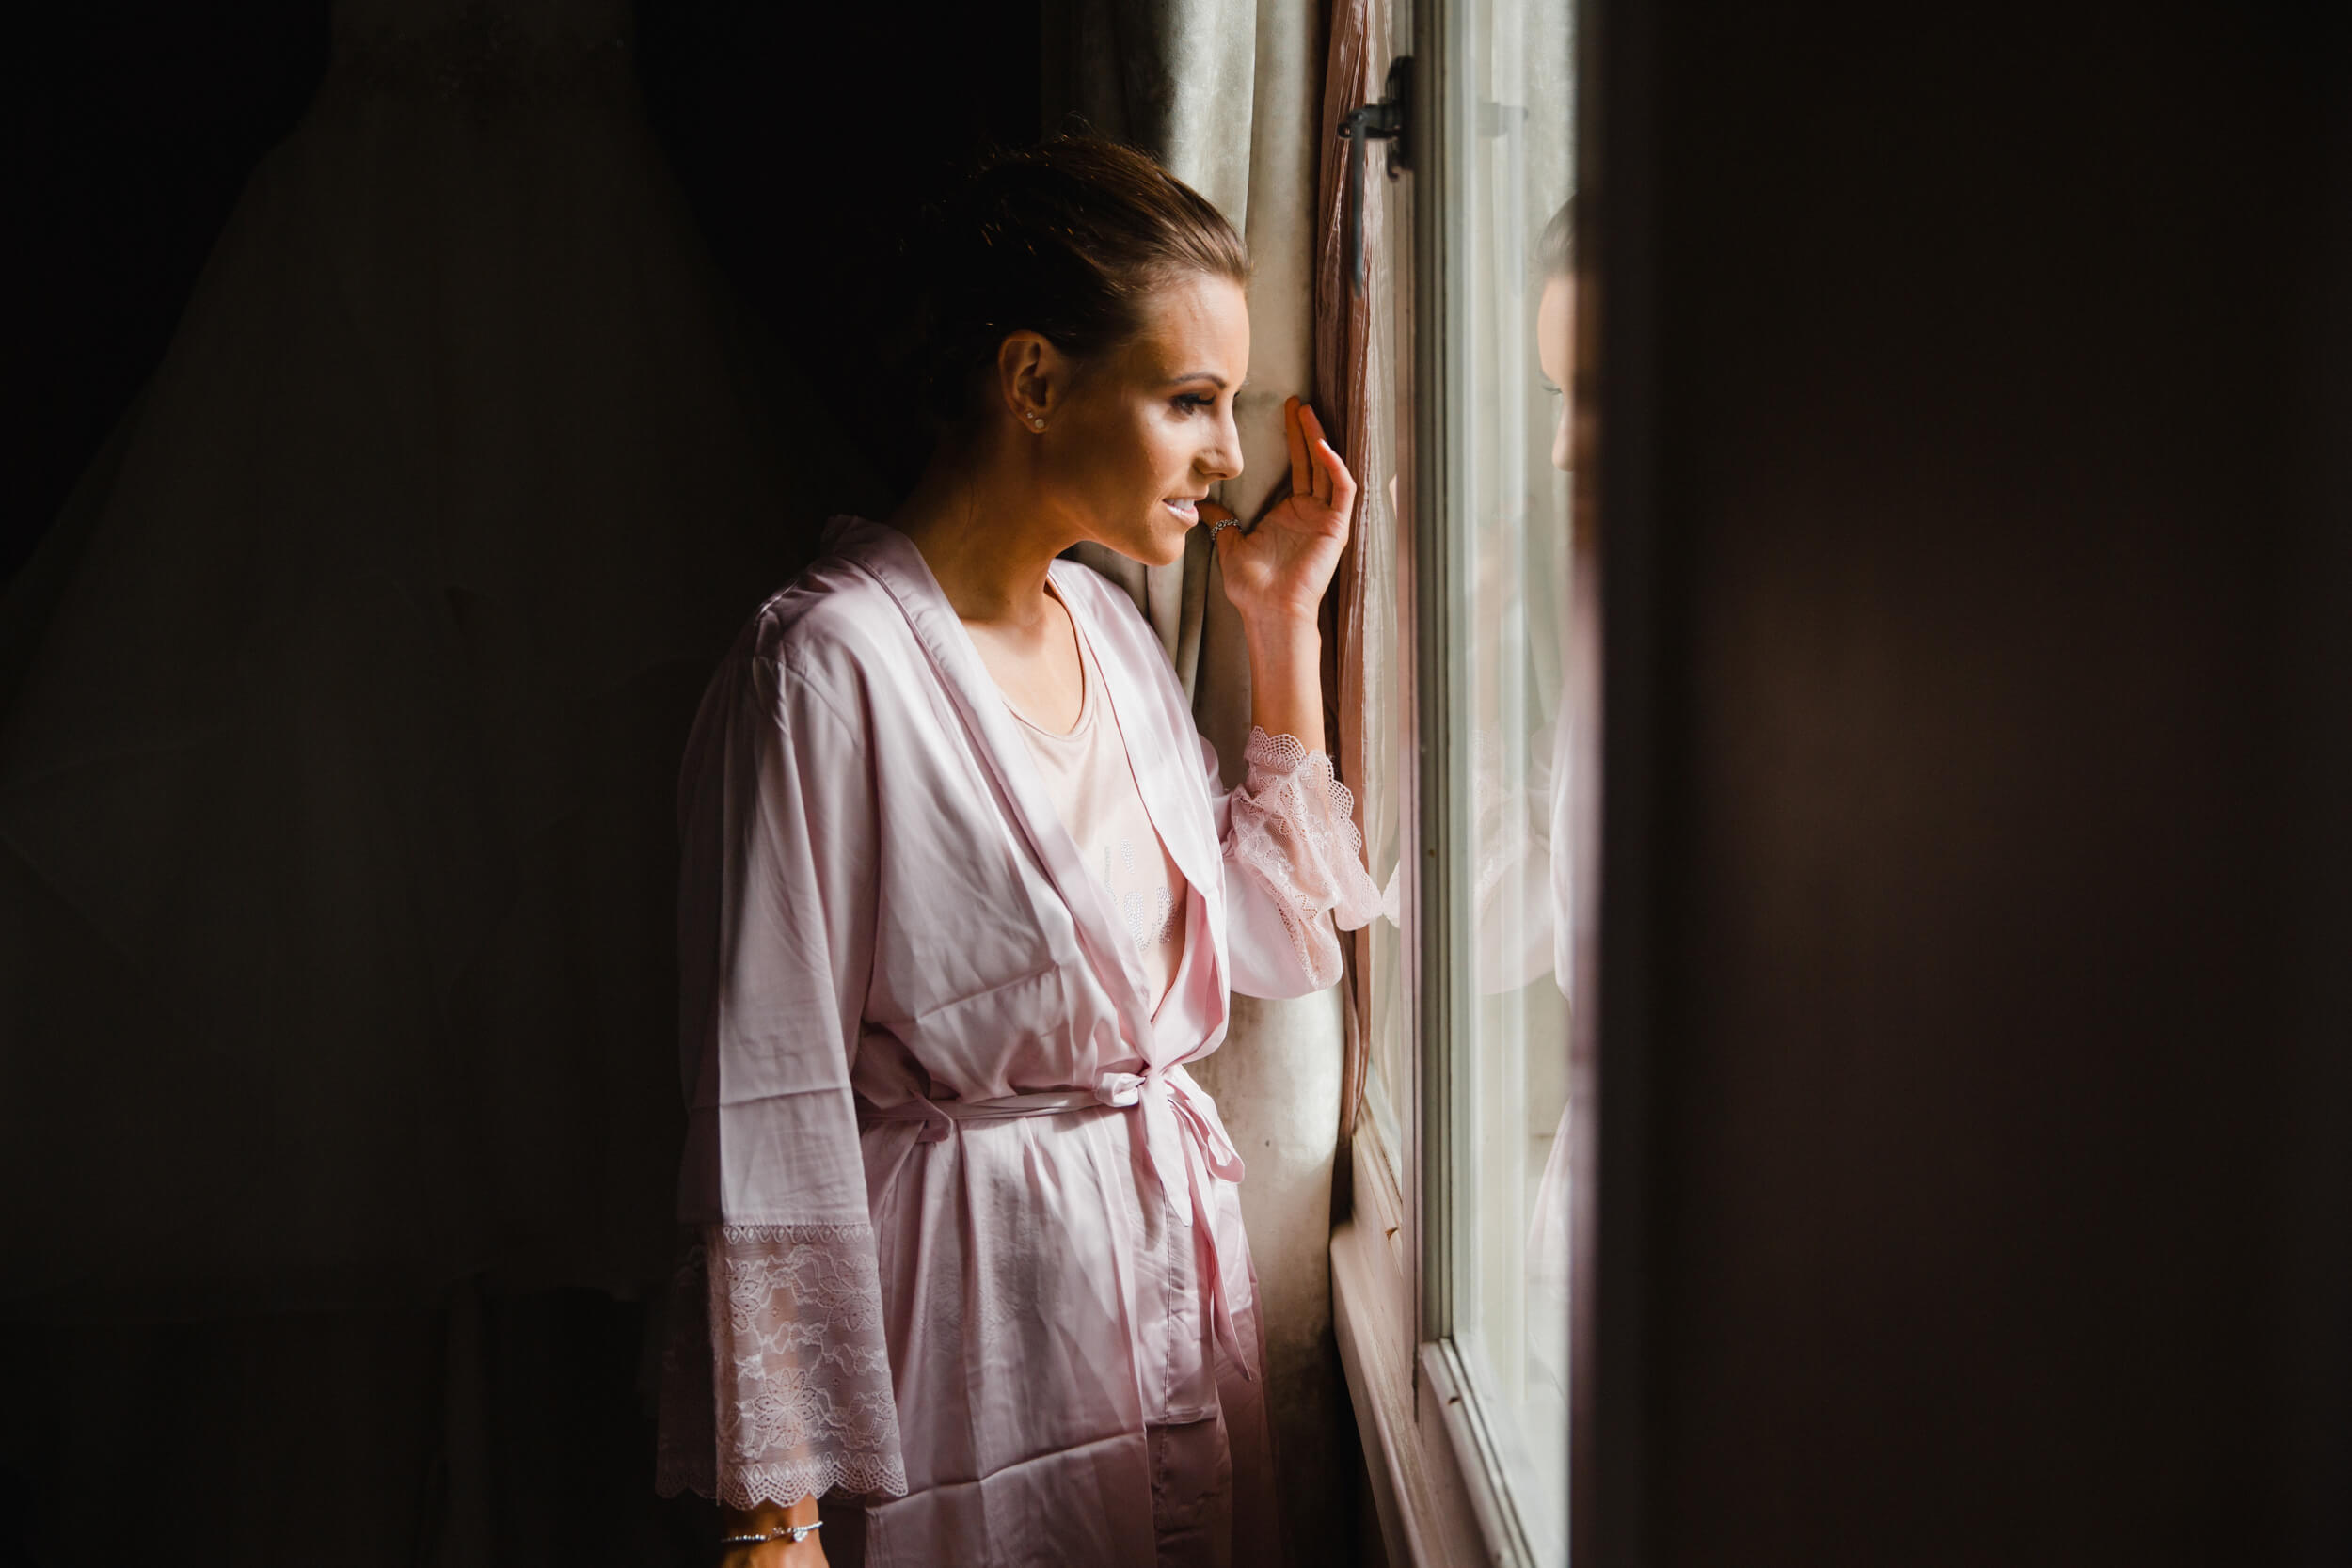 bridesmaid looking out of window down on street corner